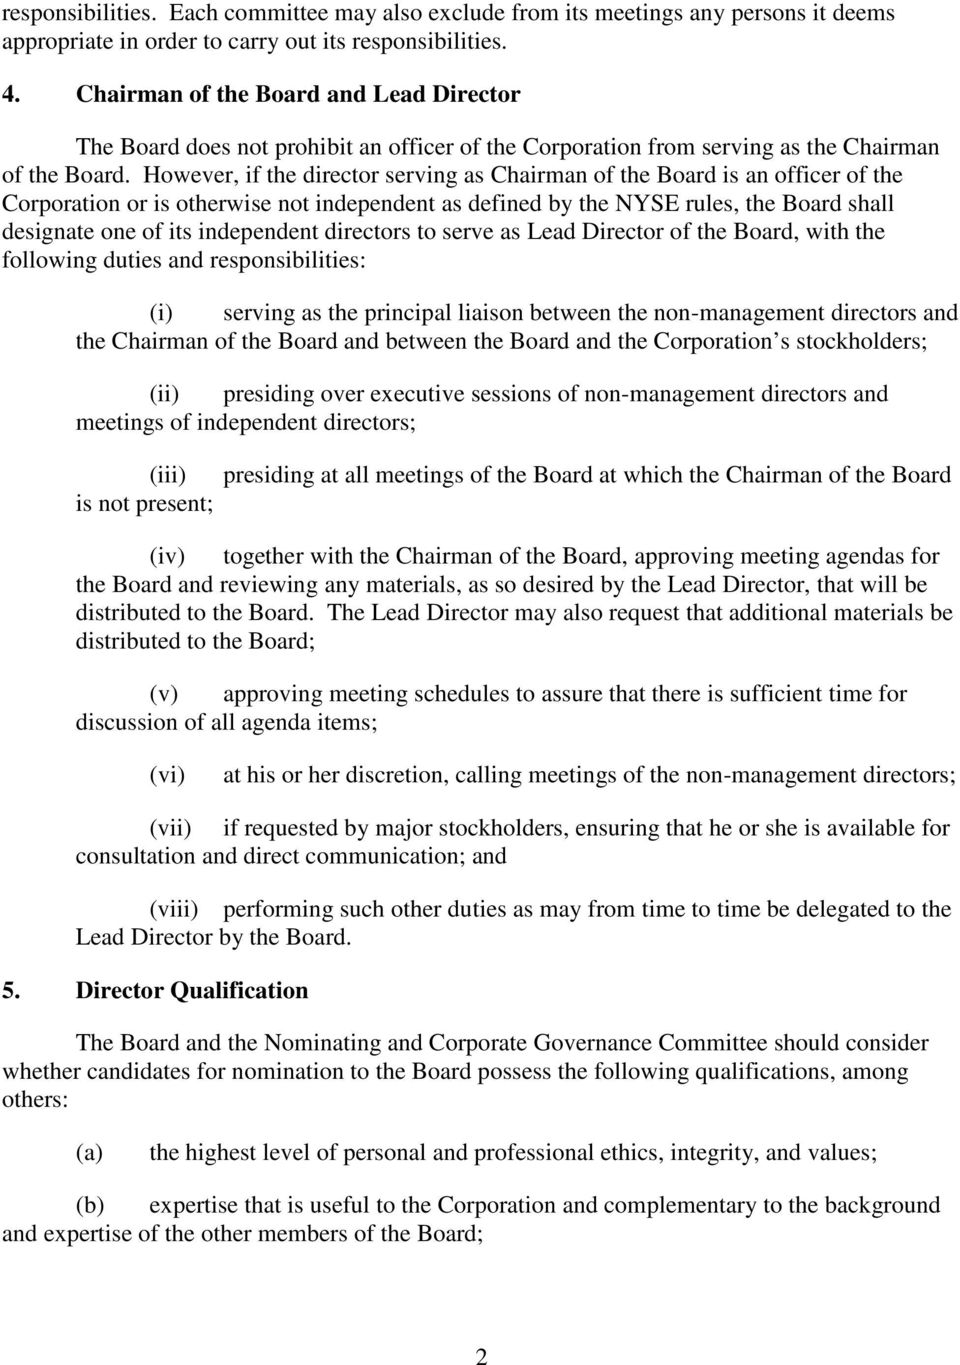 However, if the director serving as Chairman of the Board is an officer of the Corporation or is otherwise not independent as defined by the NYSE rules, the Board shall designate one of its